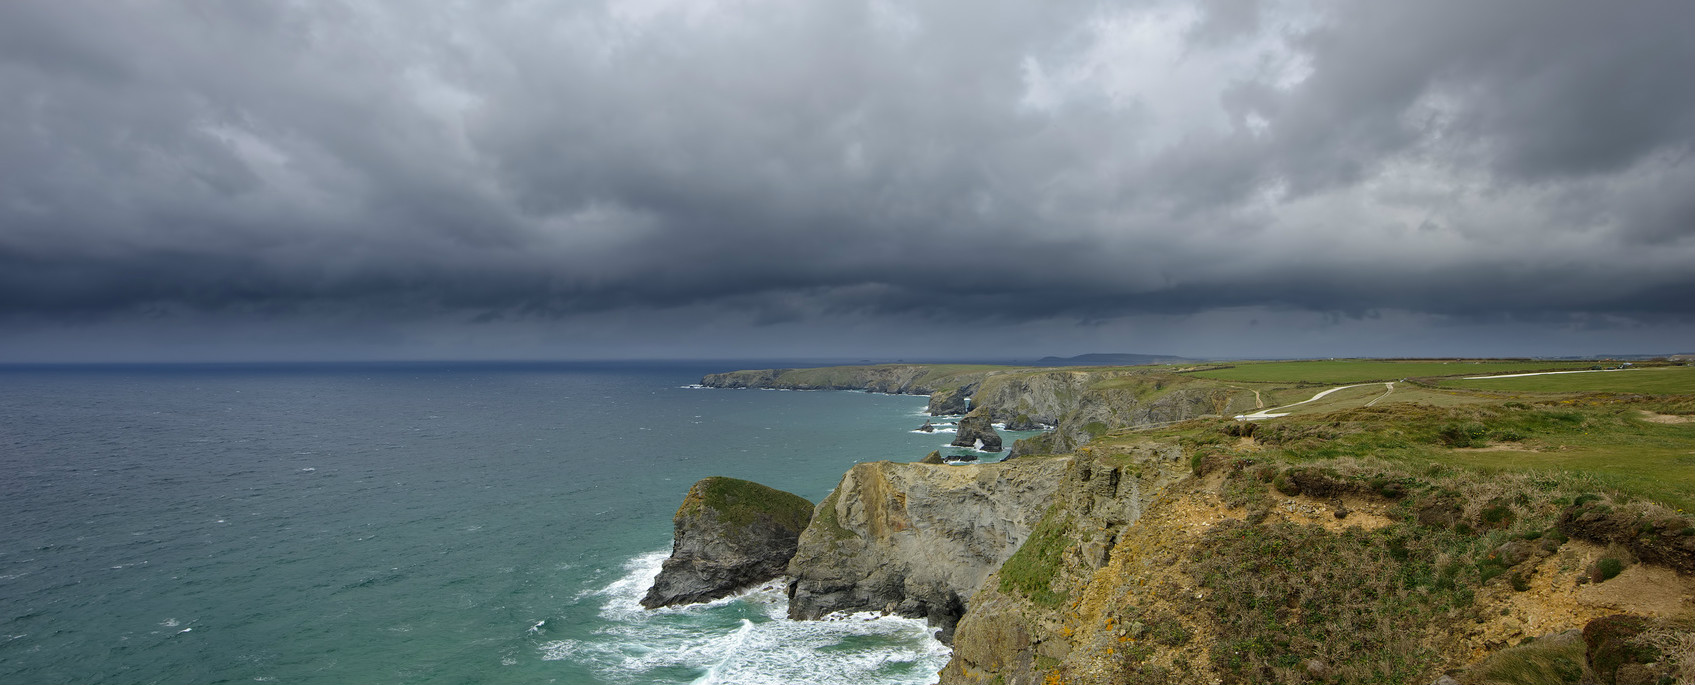 Blustery, wet start to the week before back to settled